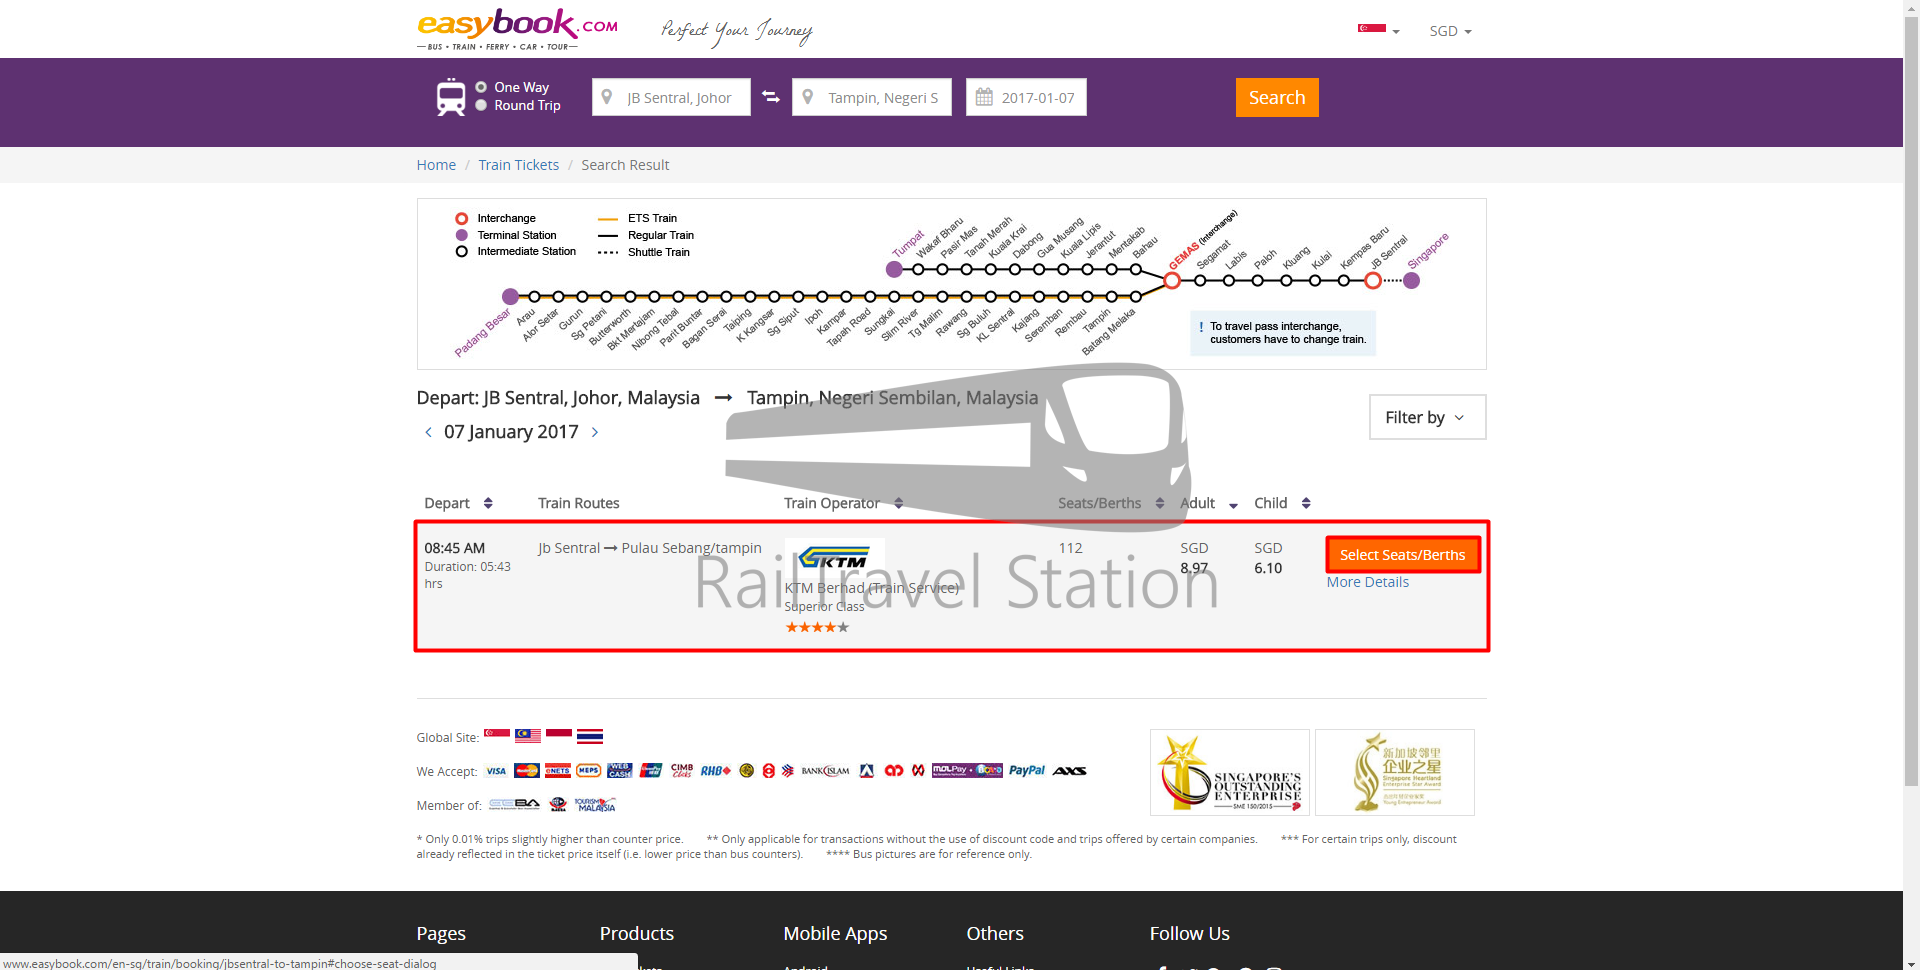 how to book ktm intercity and ets tickets online (easybook